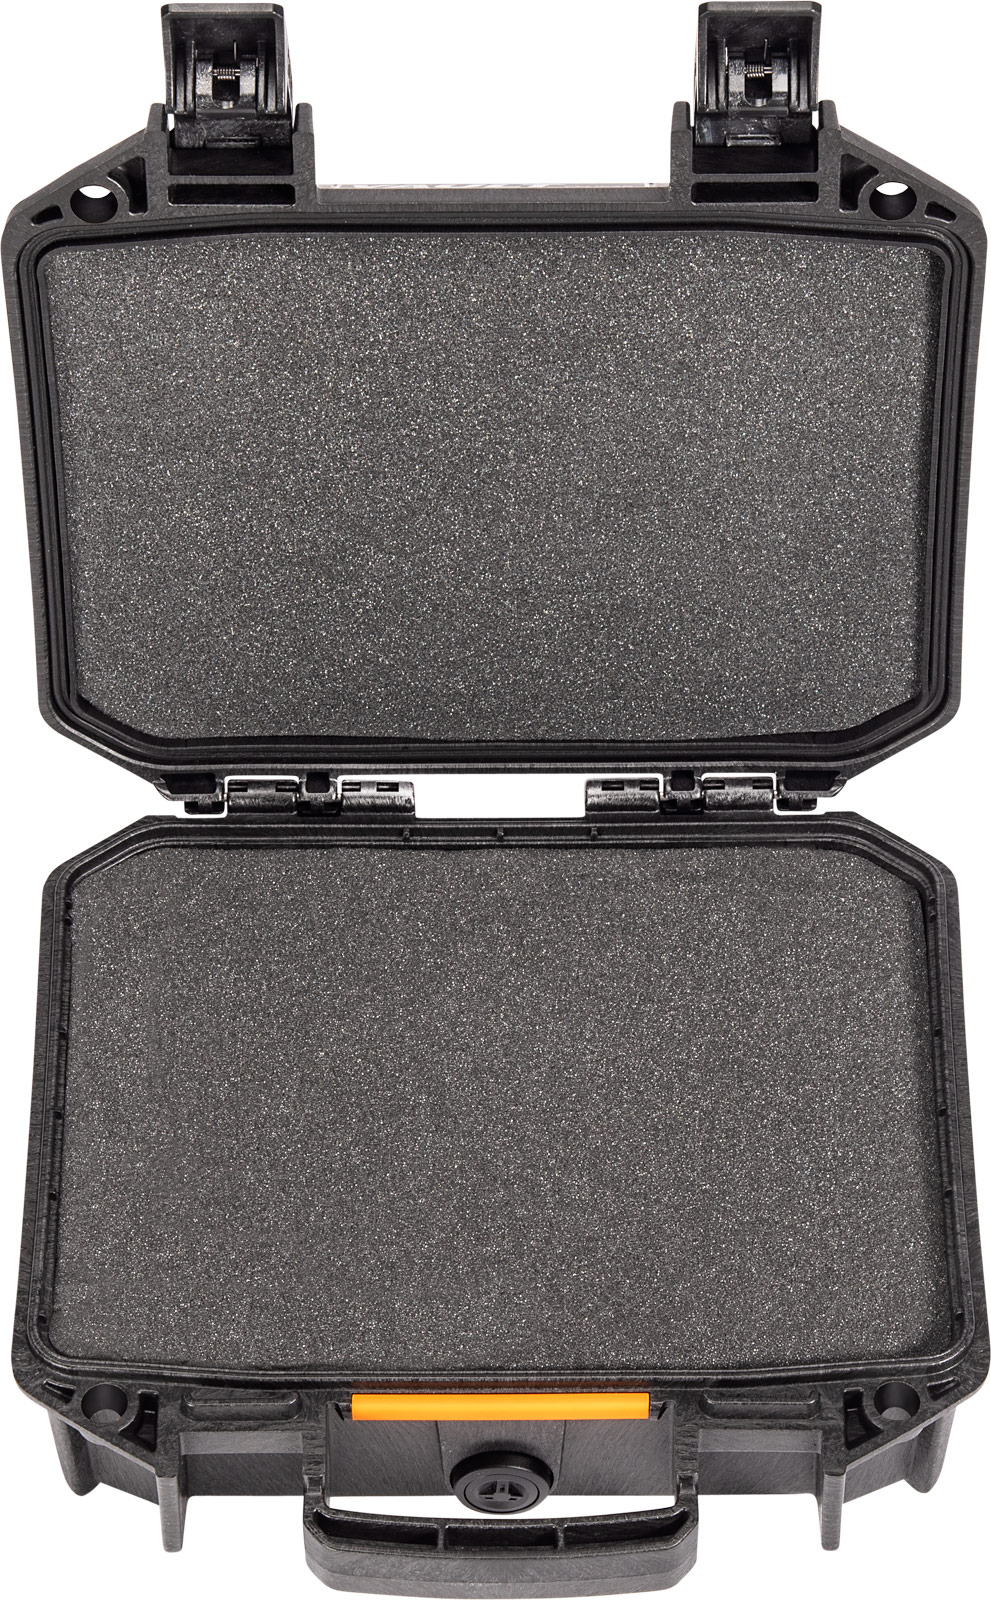 buy pelican vault v100 shop compact case